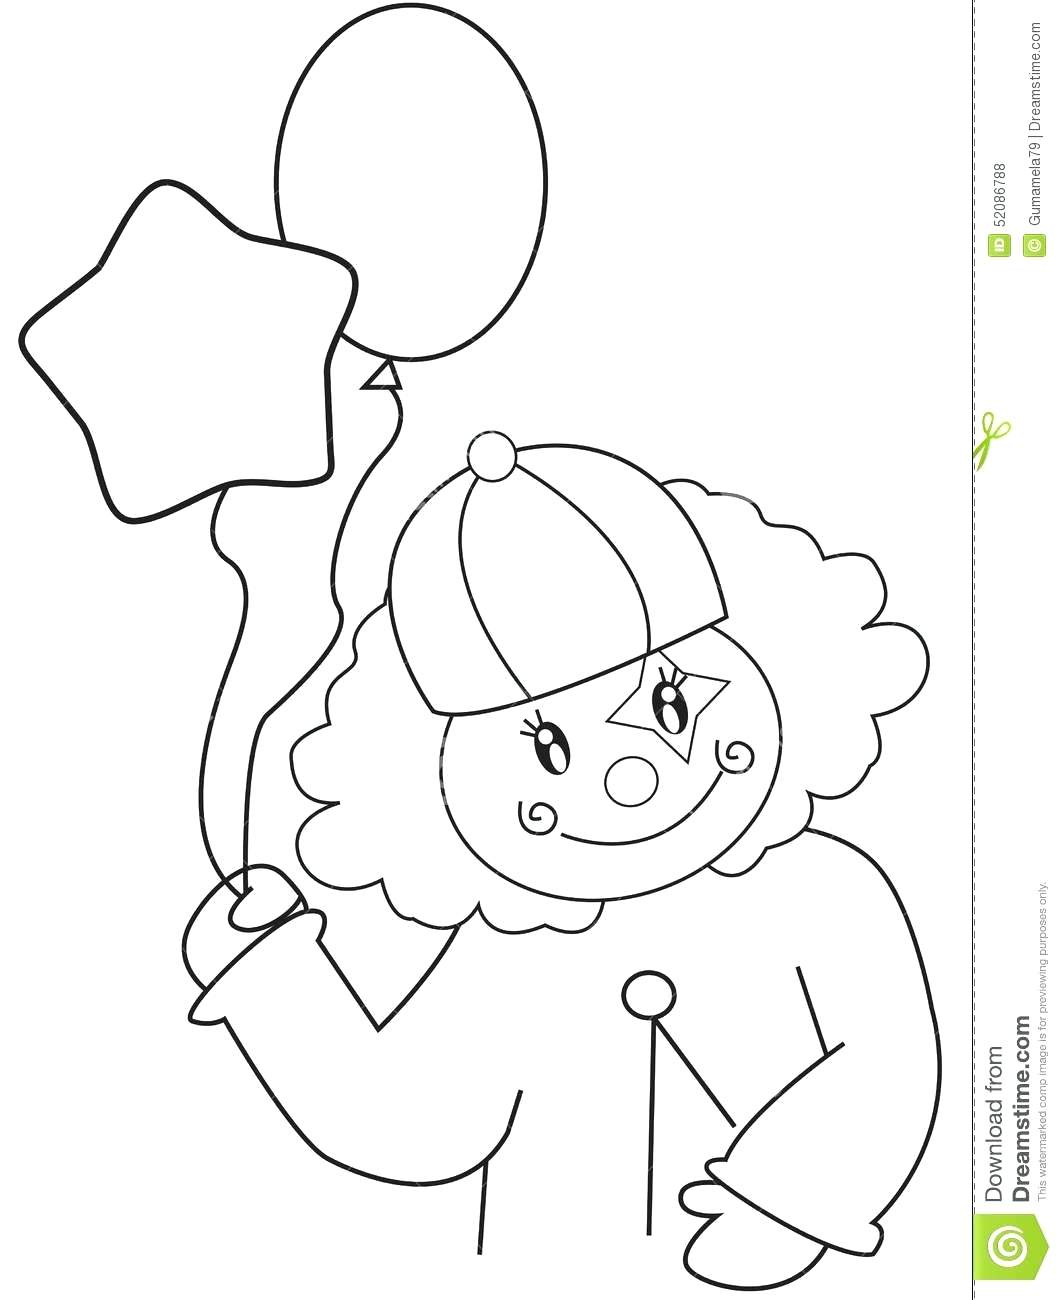 1062x1300 Superb Hot Air Balloon Drawing With Coloring Page And Online Blank